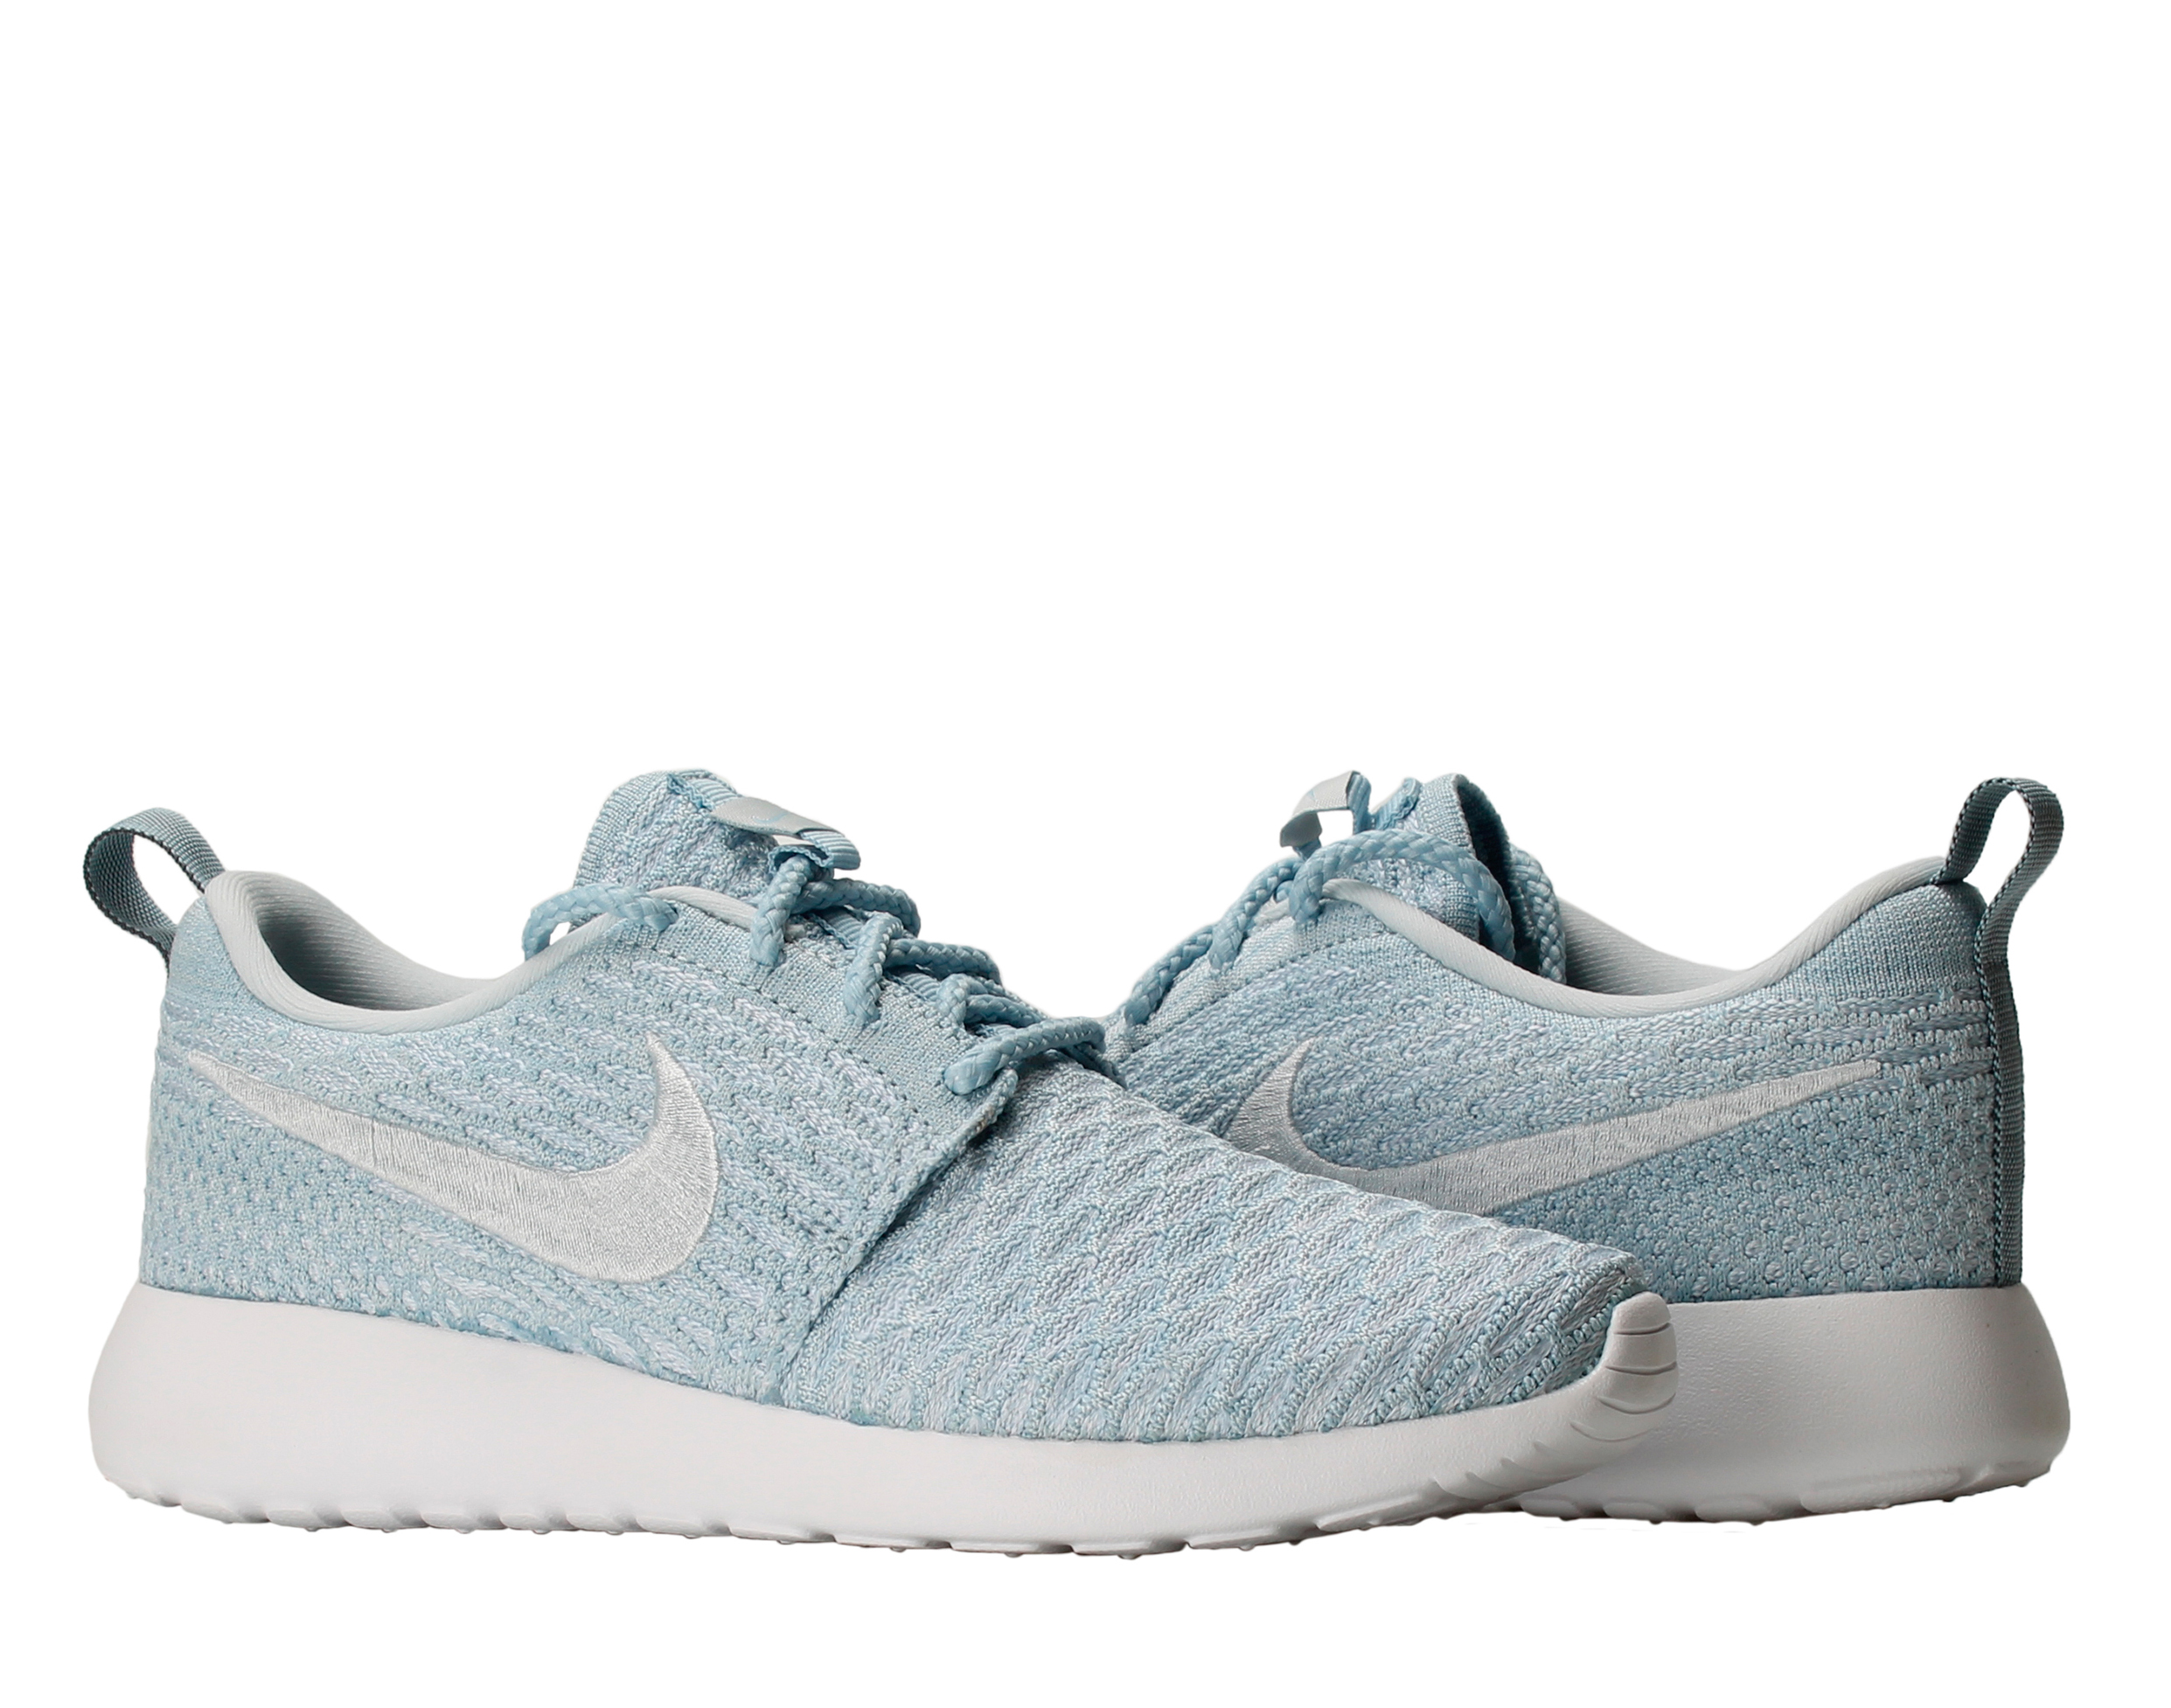 Nike Roshe One Flyknit Light Shoes Armory Blue/White Women's Running Shoes Light 704927-401 Size 5.5 a9efe8